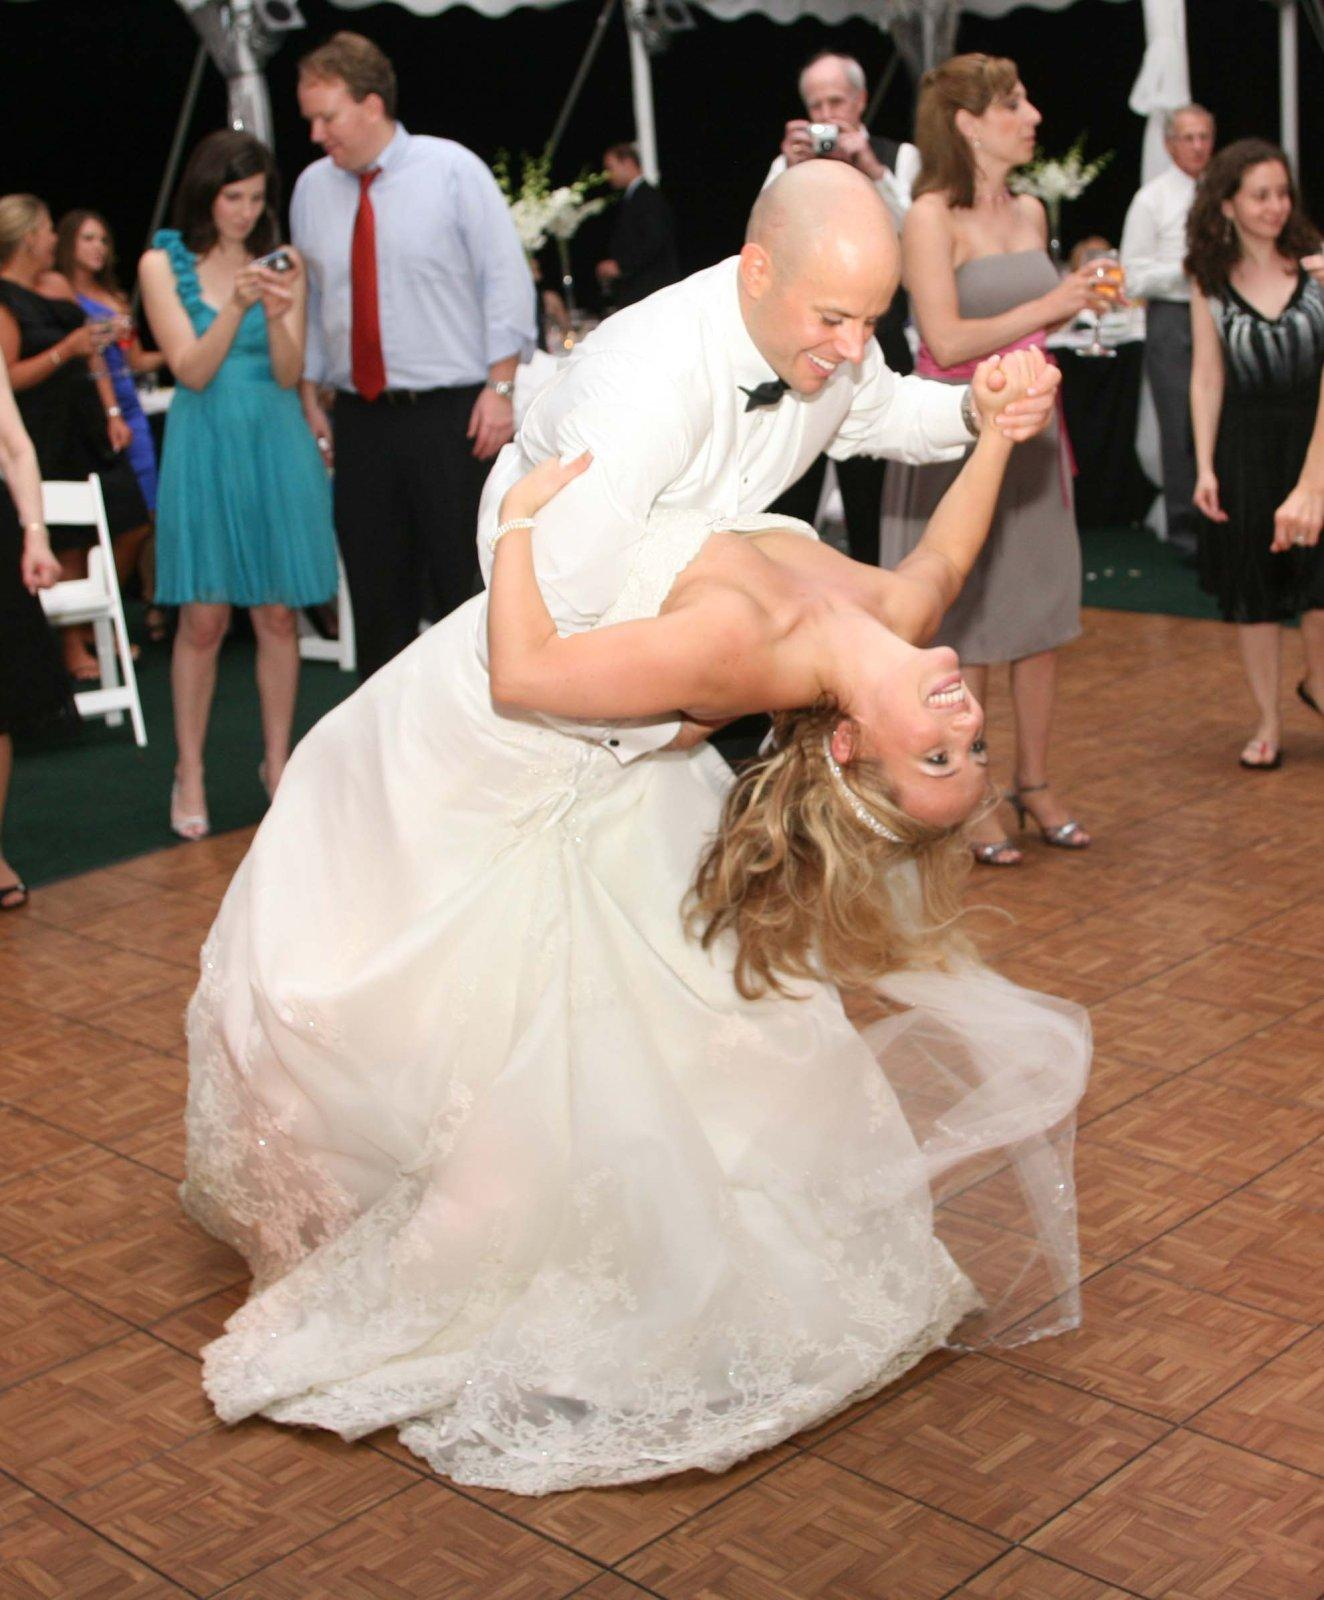 wedding dance lessons images nyc